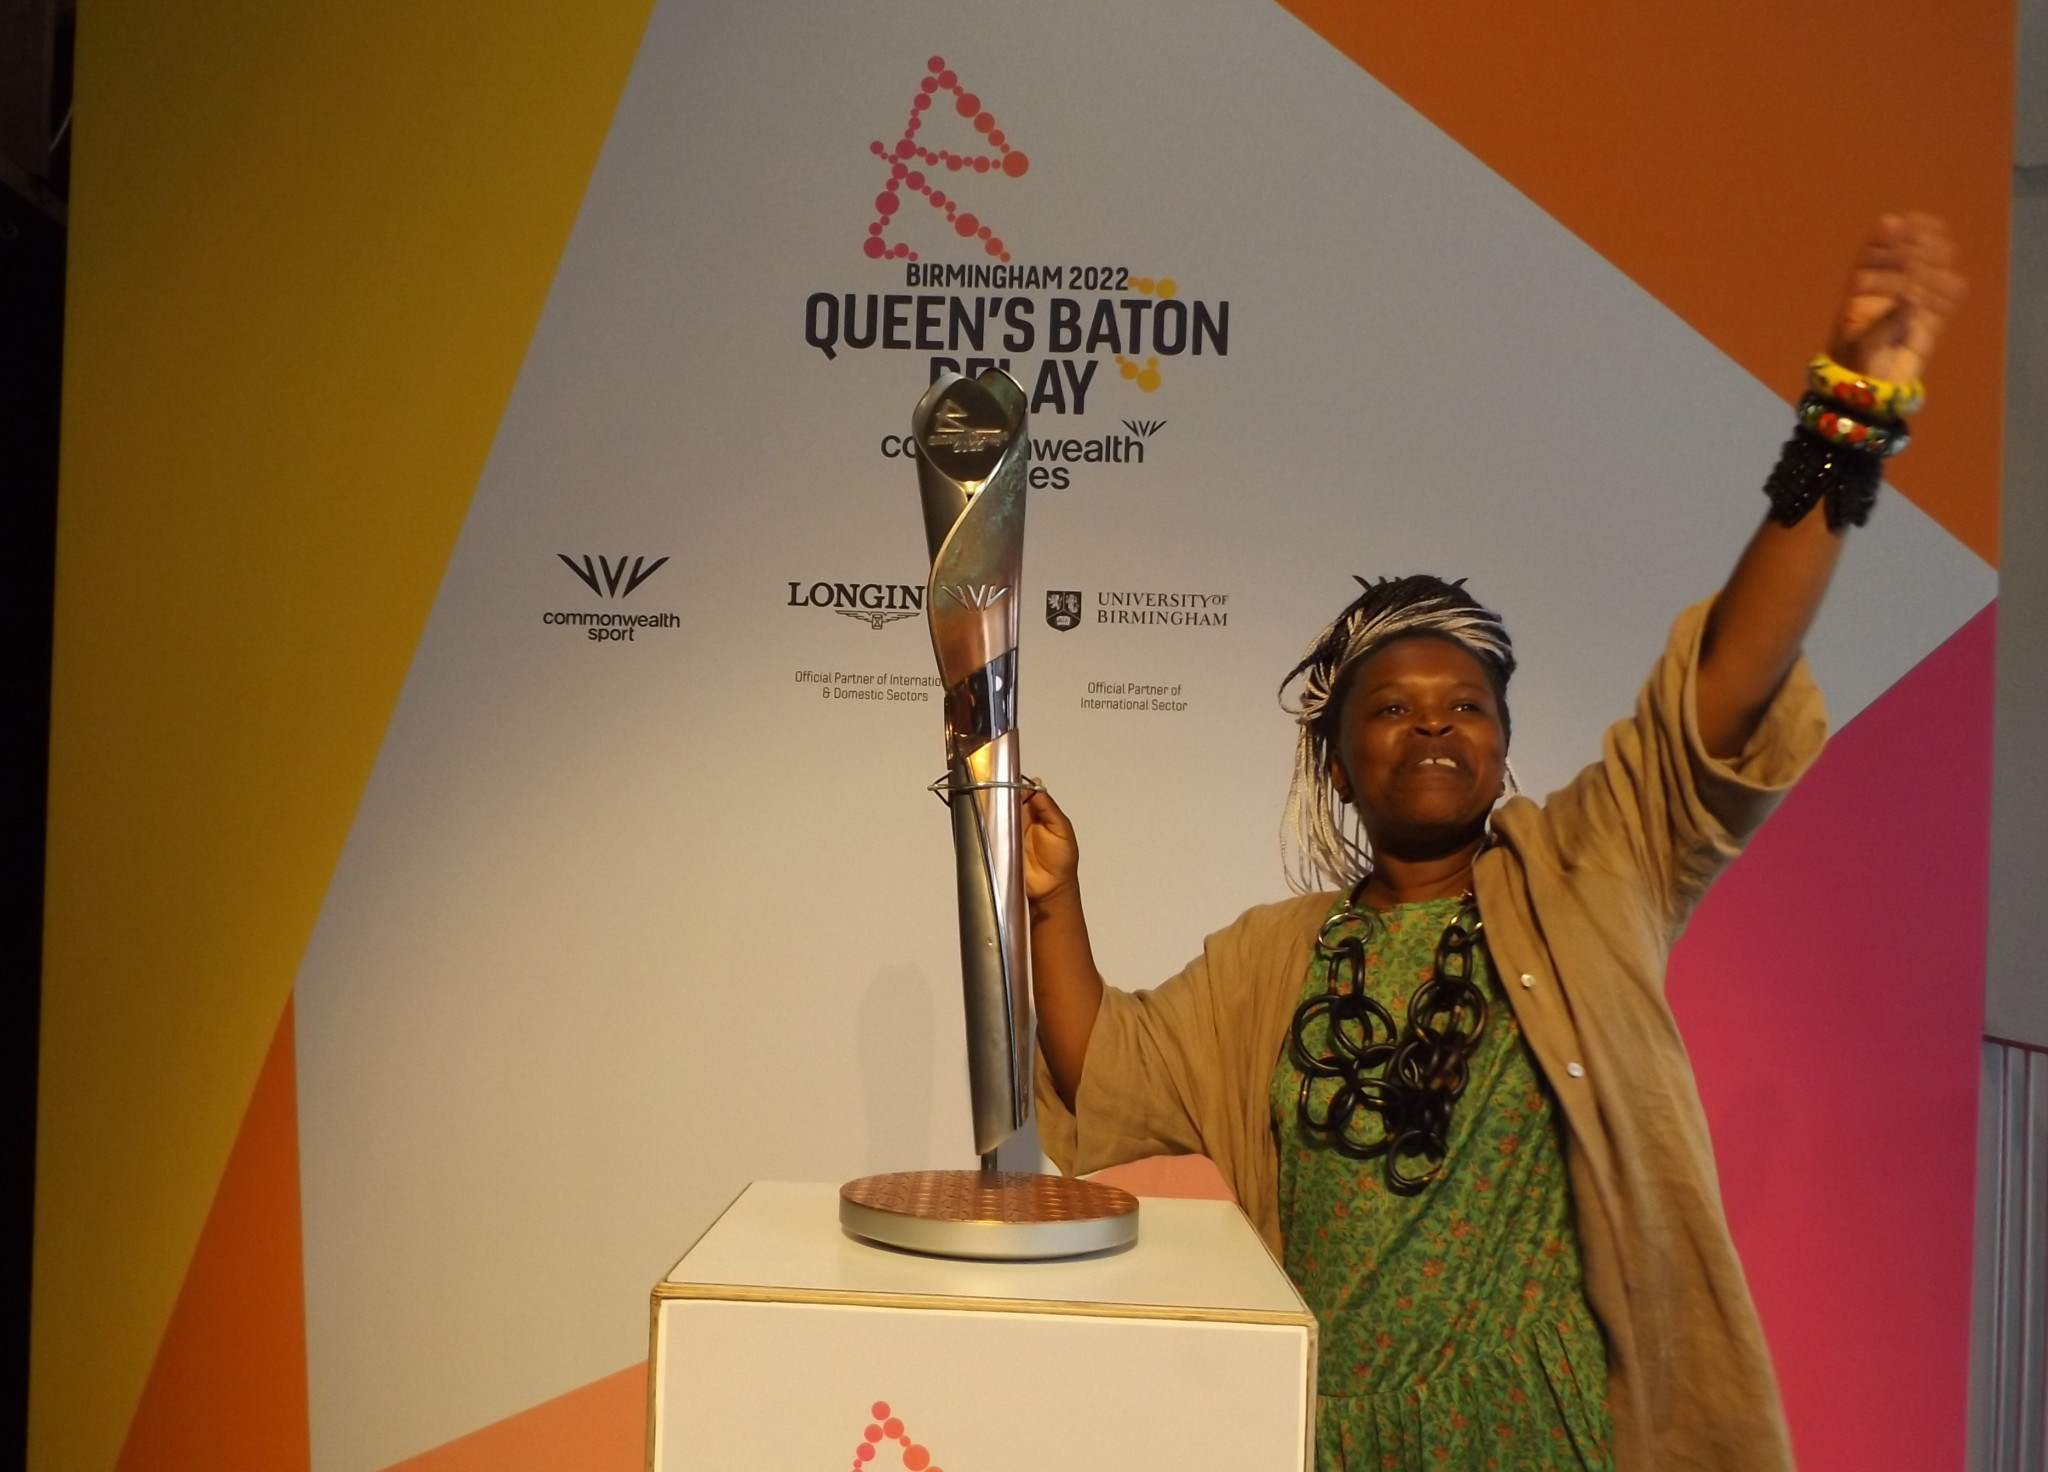 Laura Nyahuye, who led the design process, poses with the Birmingham 2022 Baton ©Philip Barker